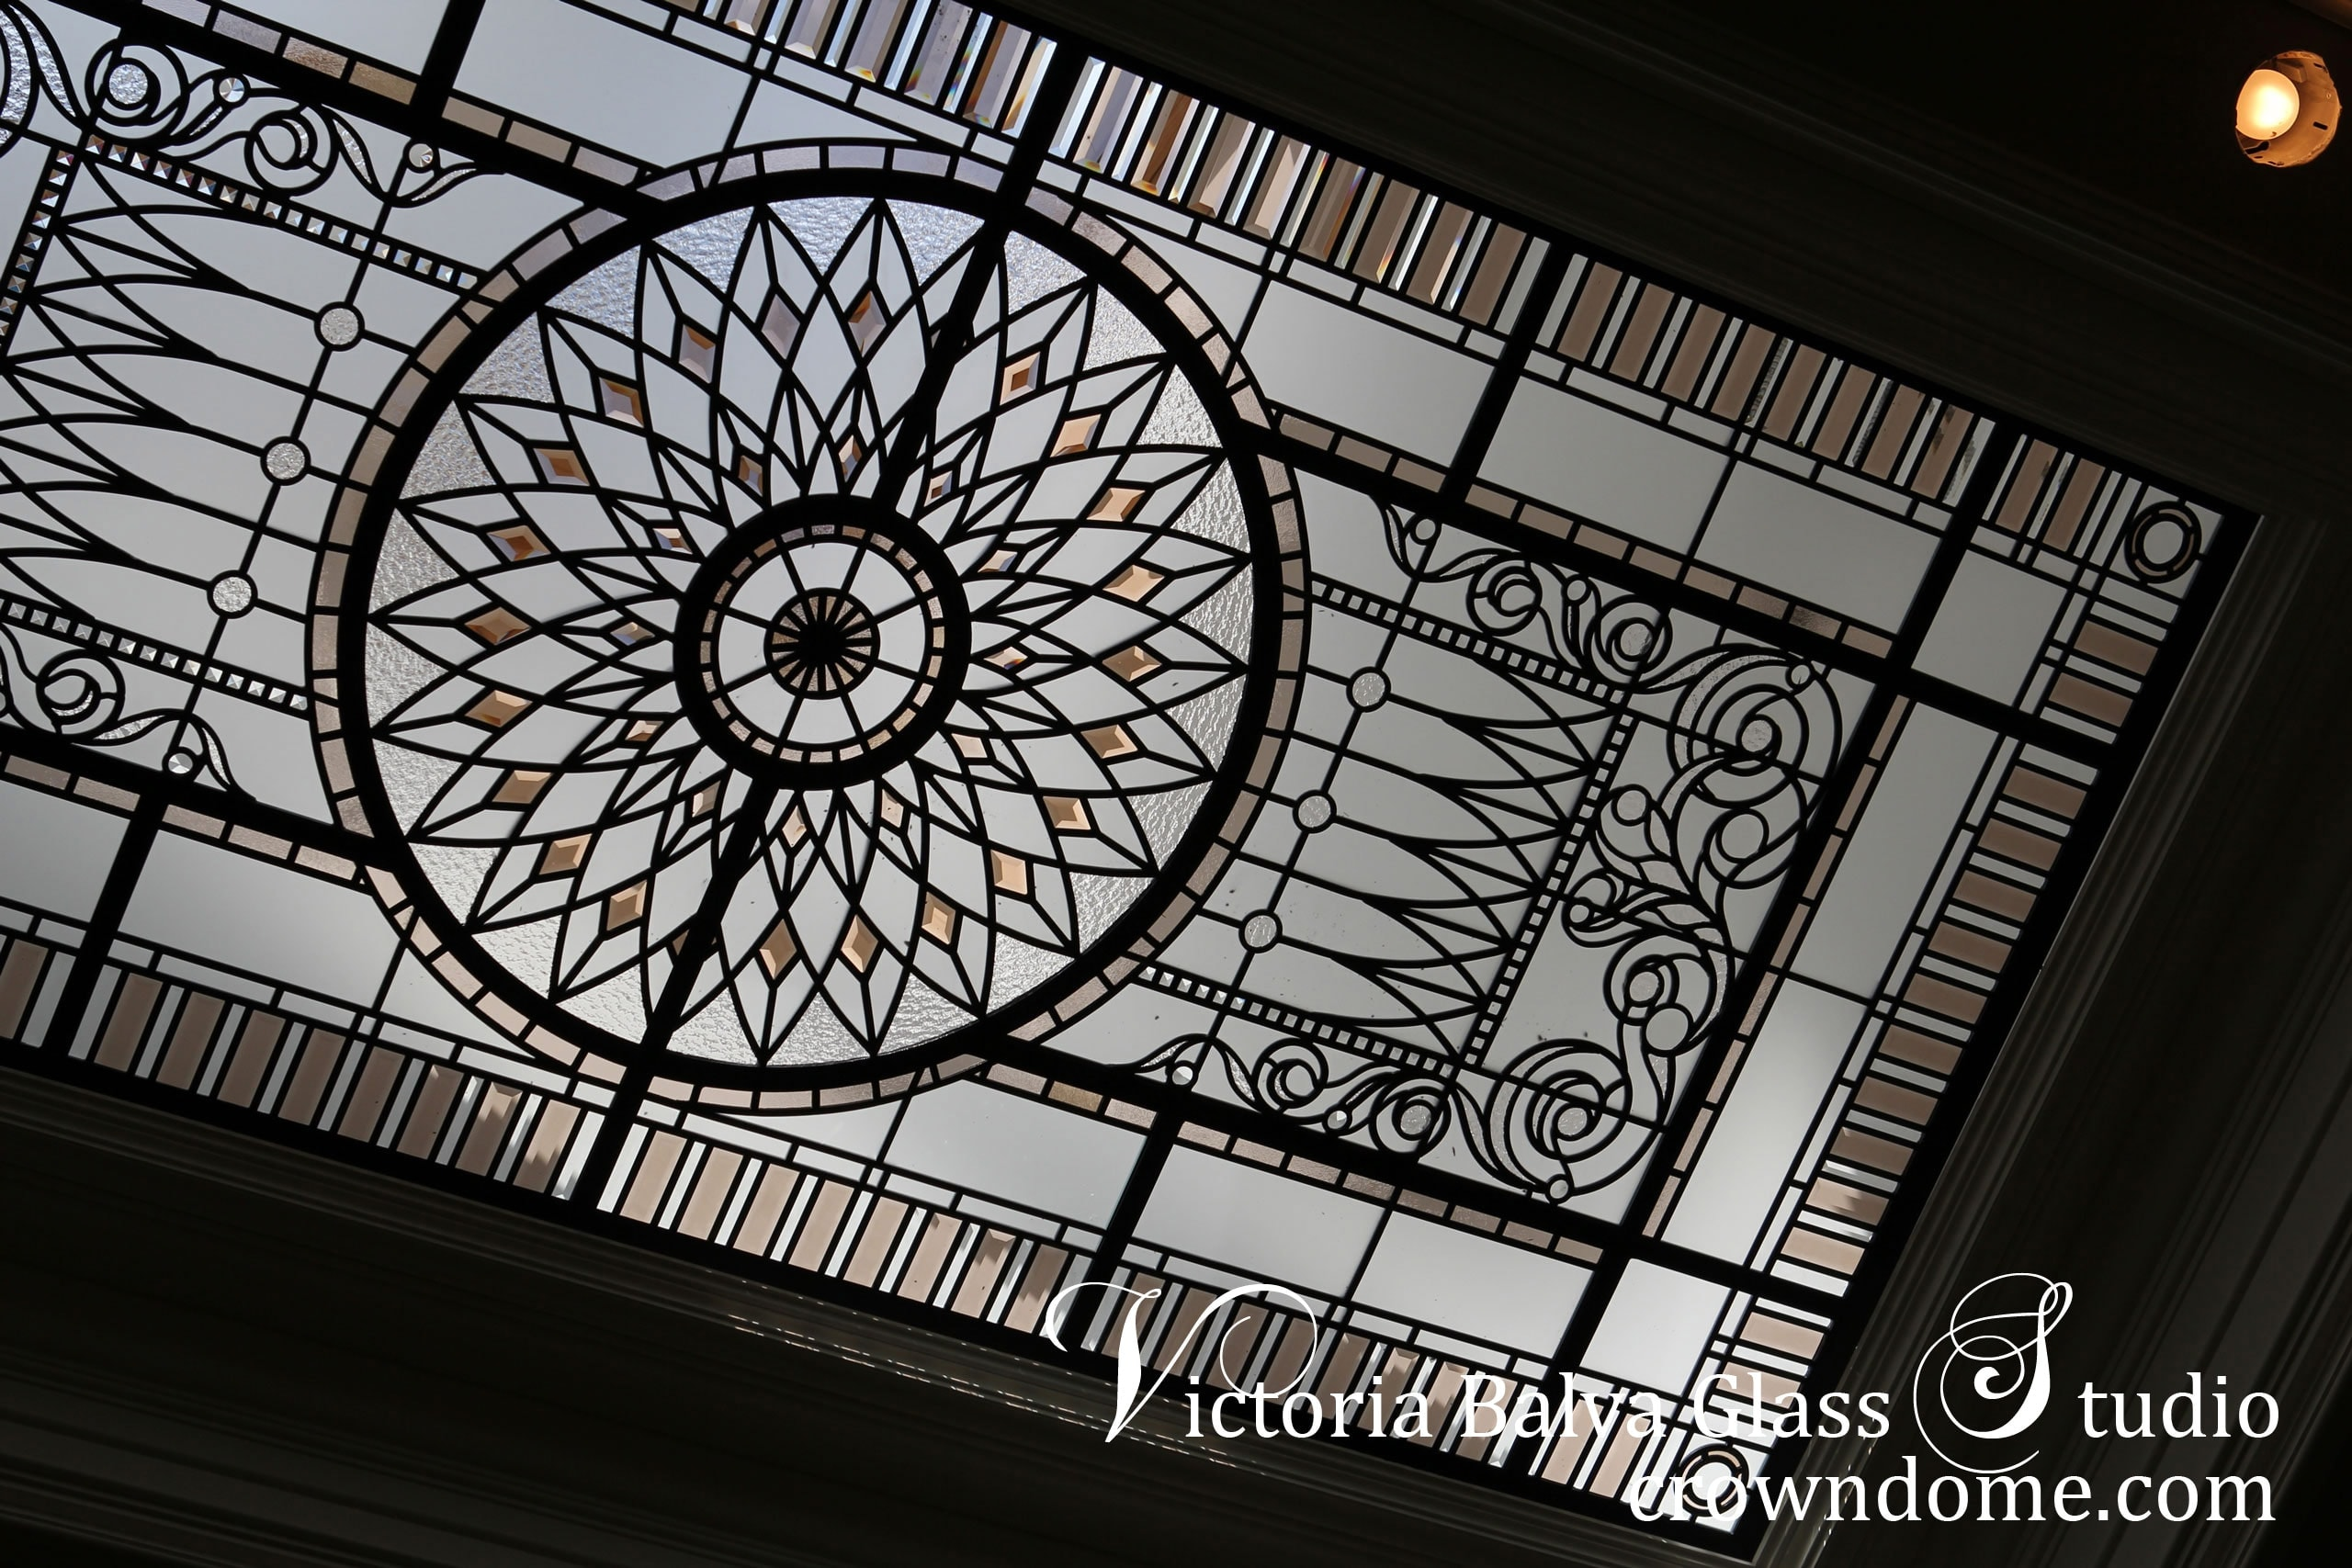 Large classically inspired stained and leaded glass skylight ceiling for double-height grand entrance foyer of custom-built luxury house